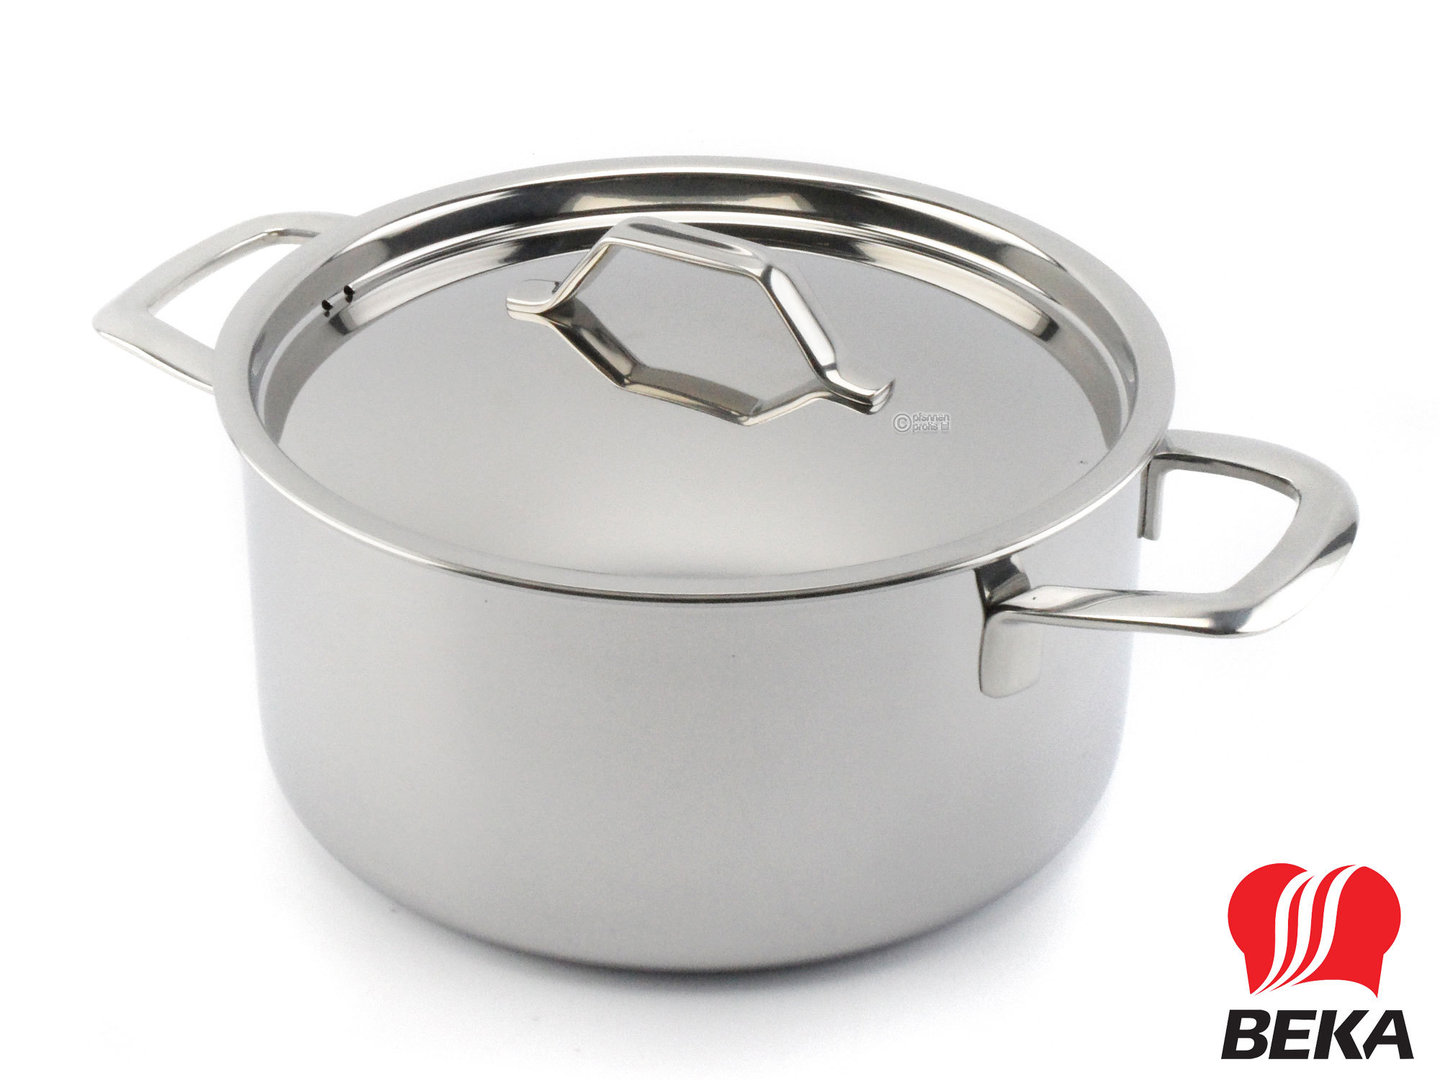 BEKA 3-ply casserole TRI-LUX 20 cm multi-layer stainless steel with lid